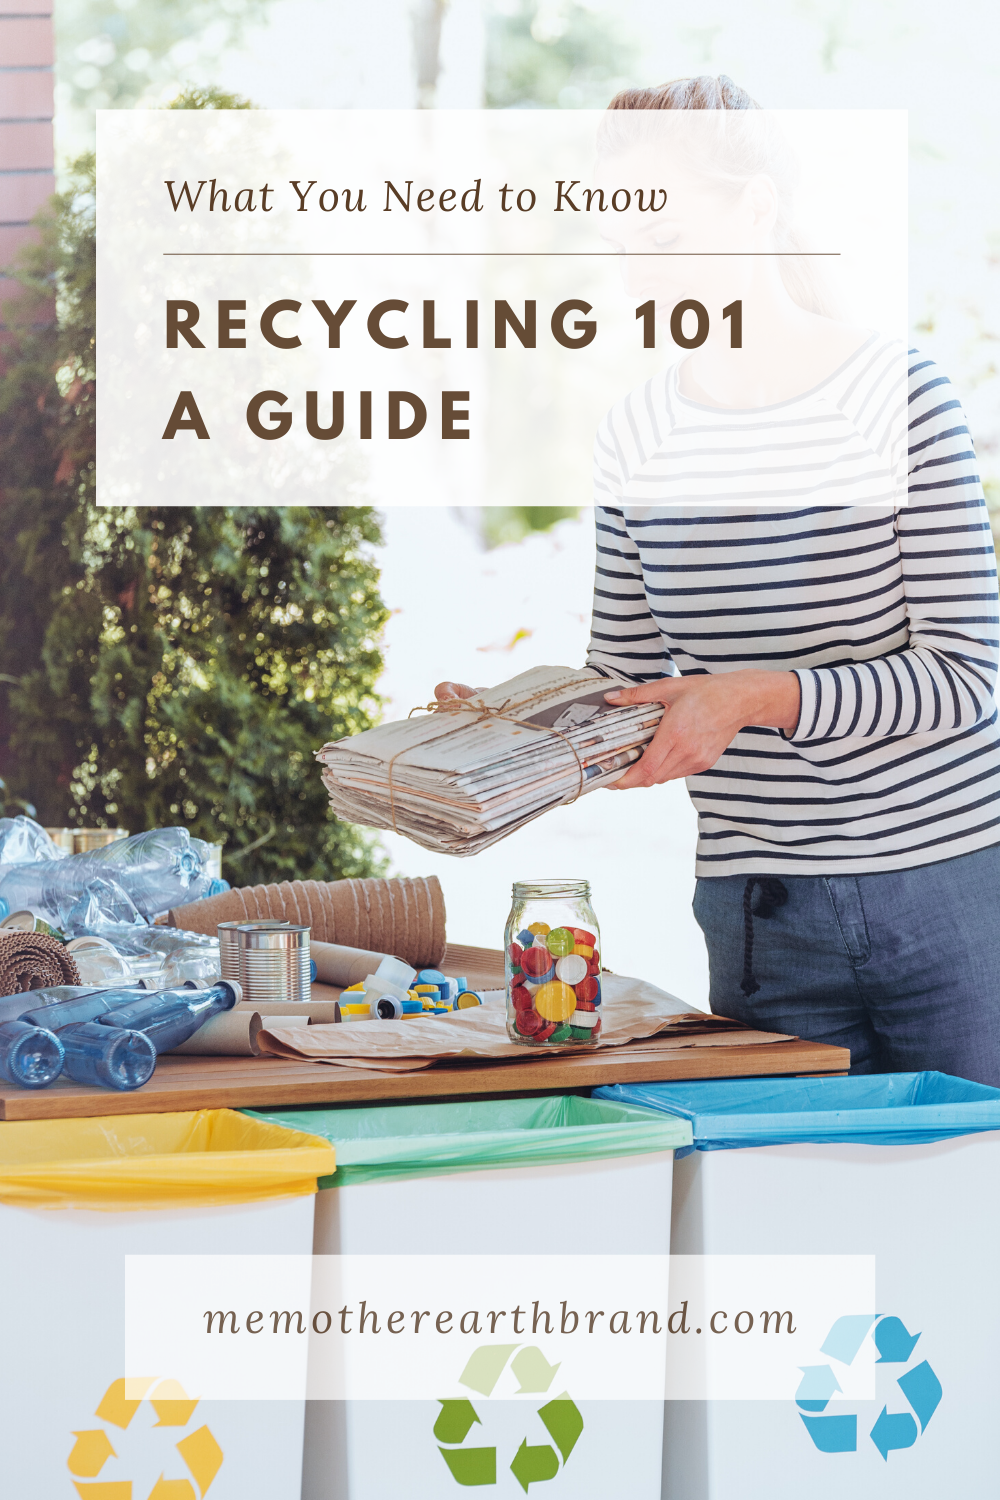 Recycling 101: A Guide